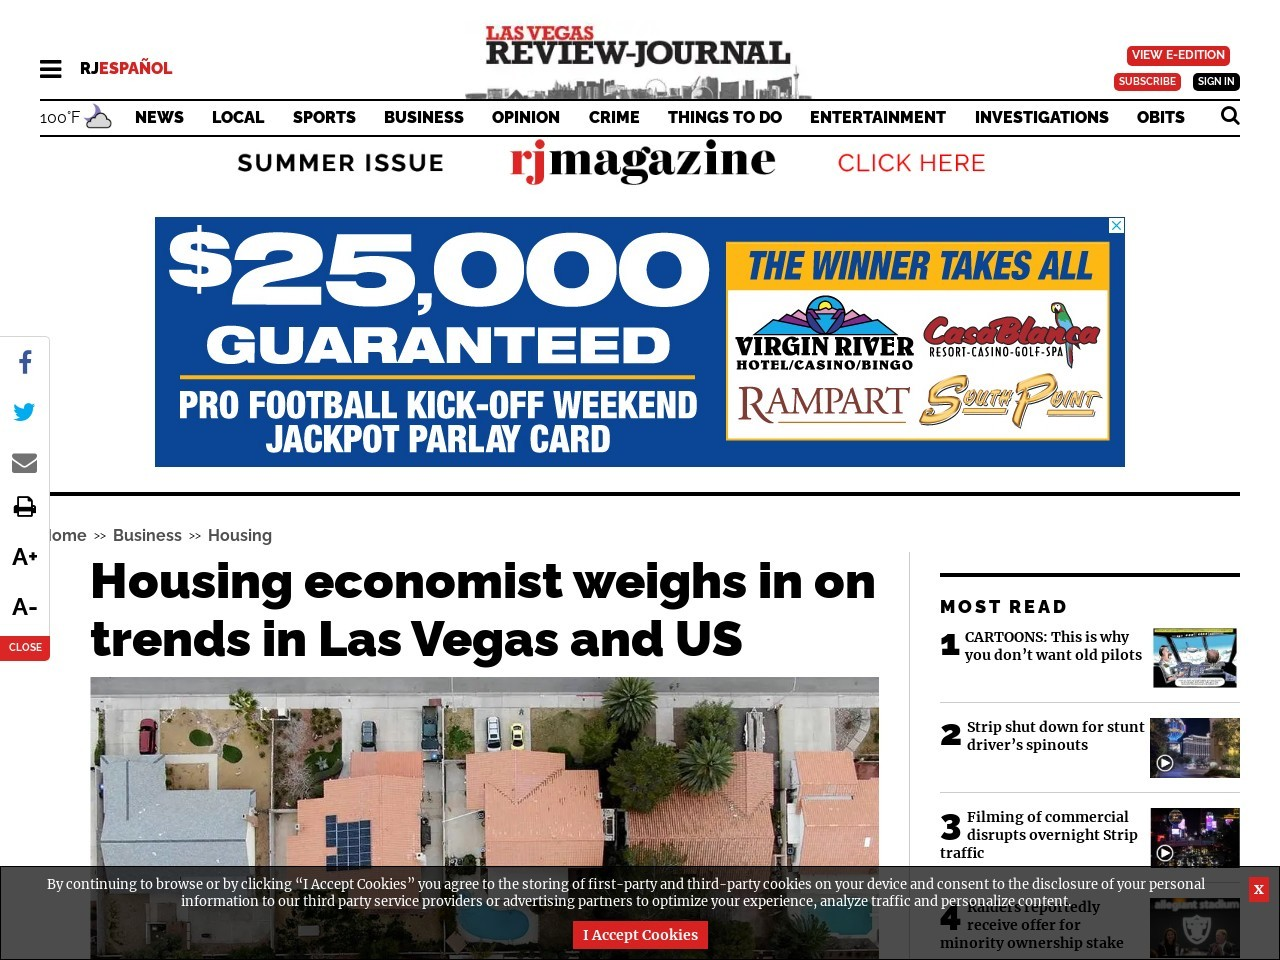 Housing economist weighs in on trends in Las Vegas and US